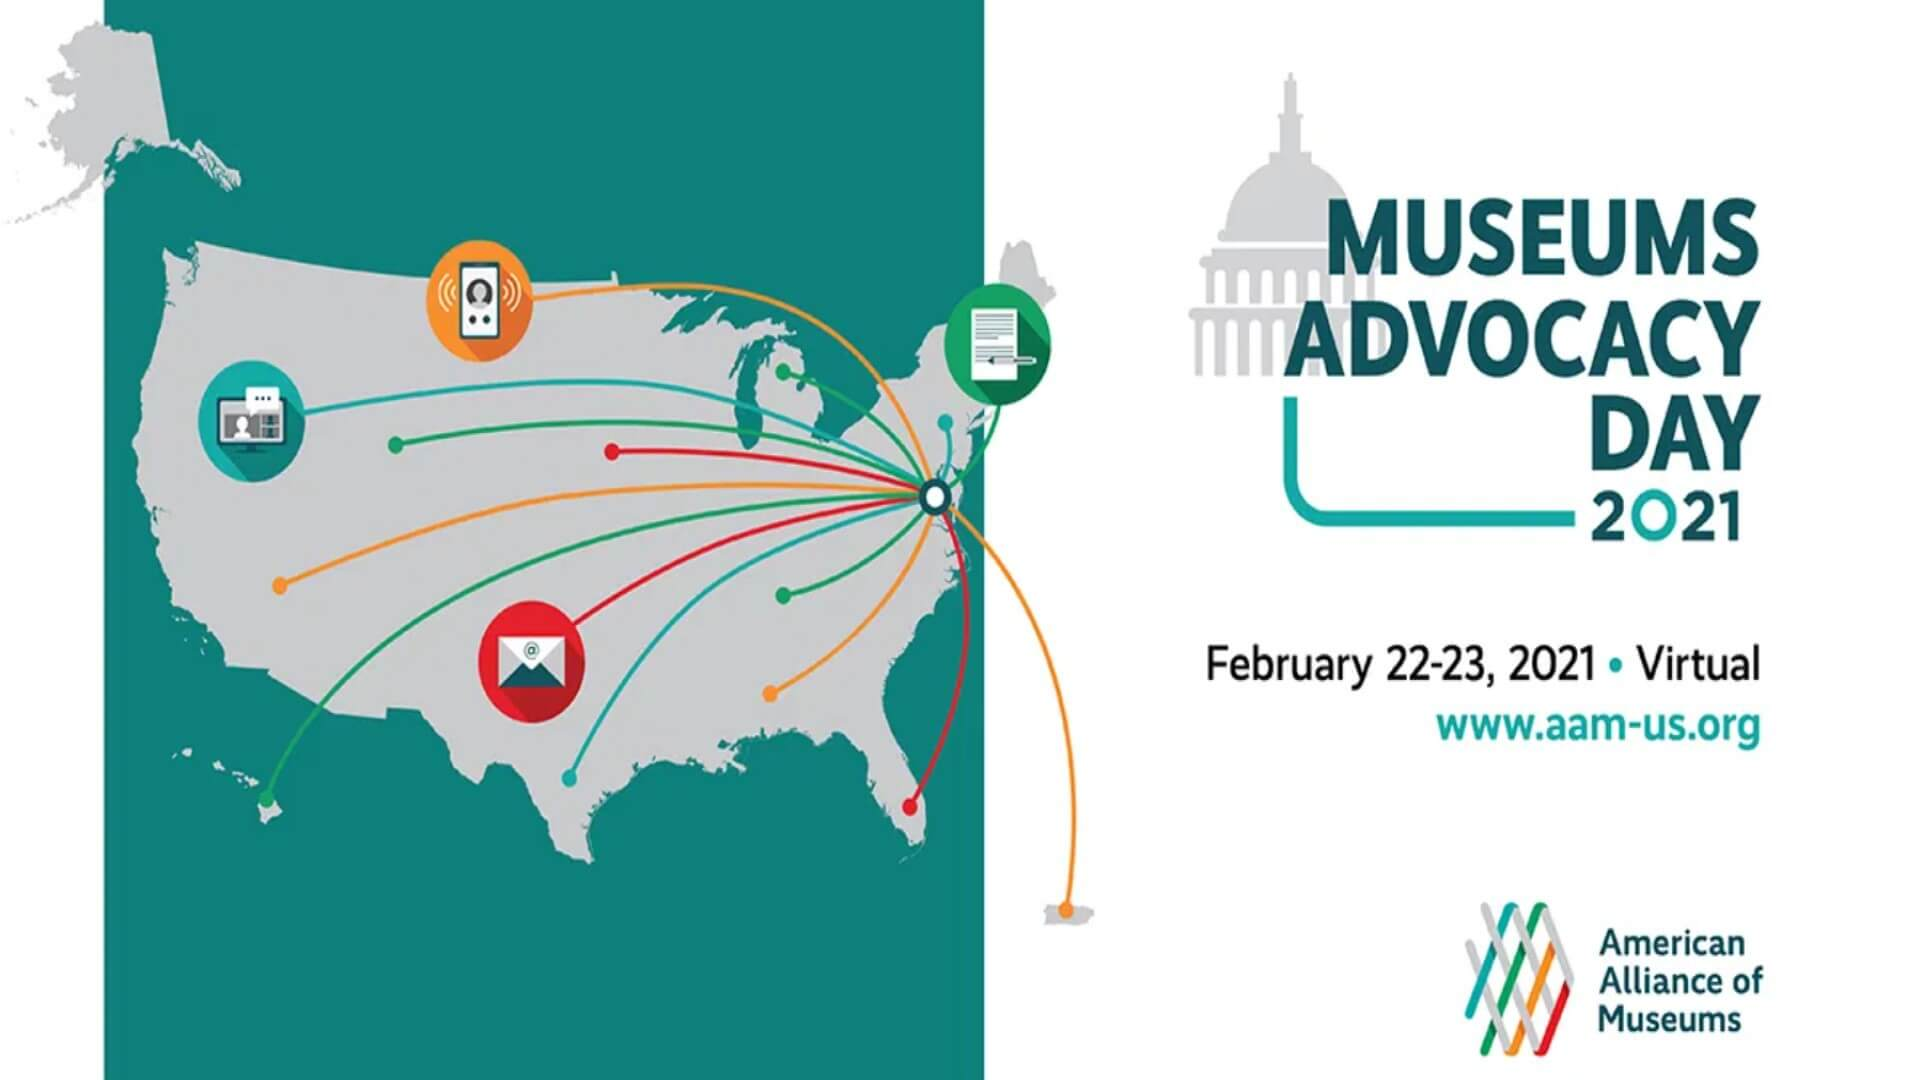 National Museum Advocacy Day